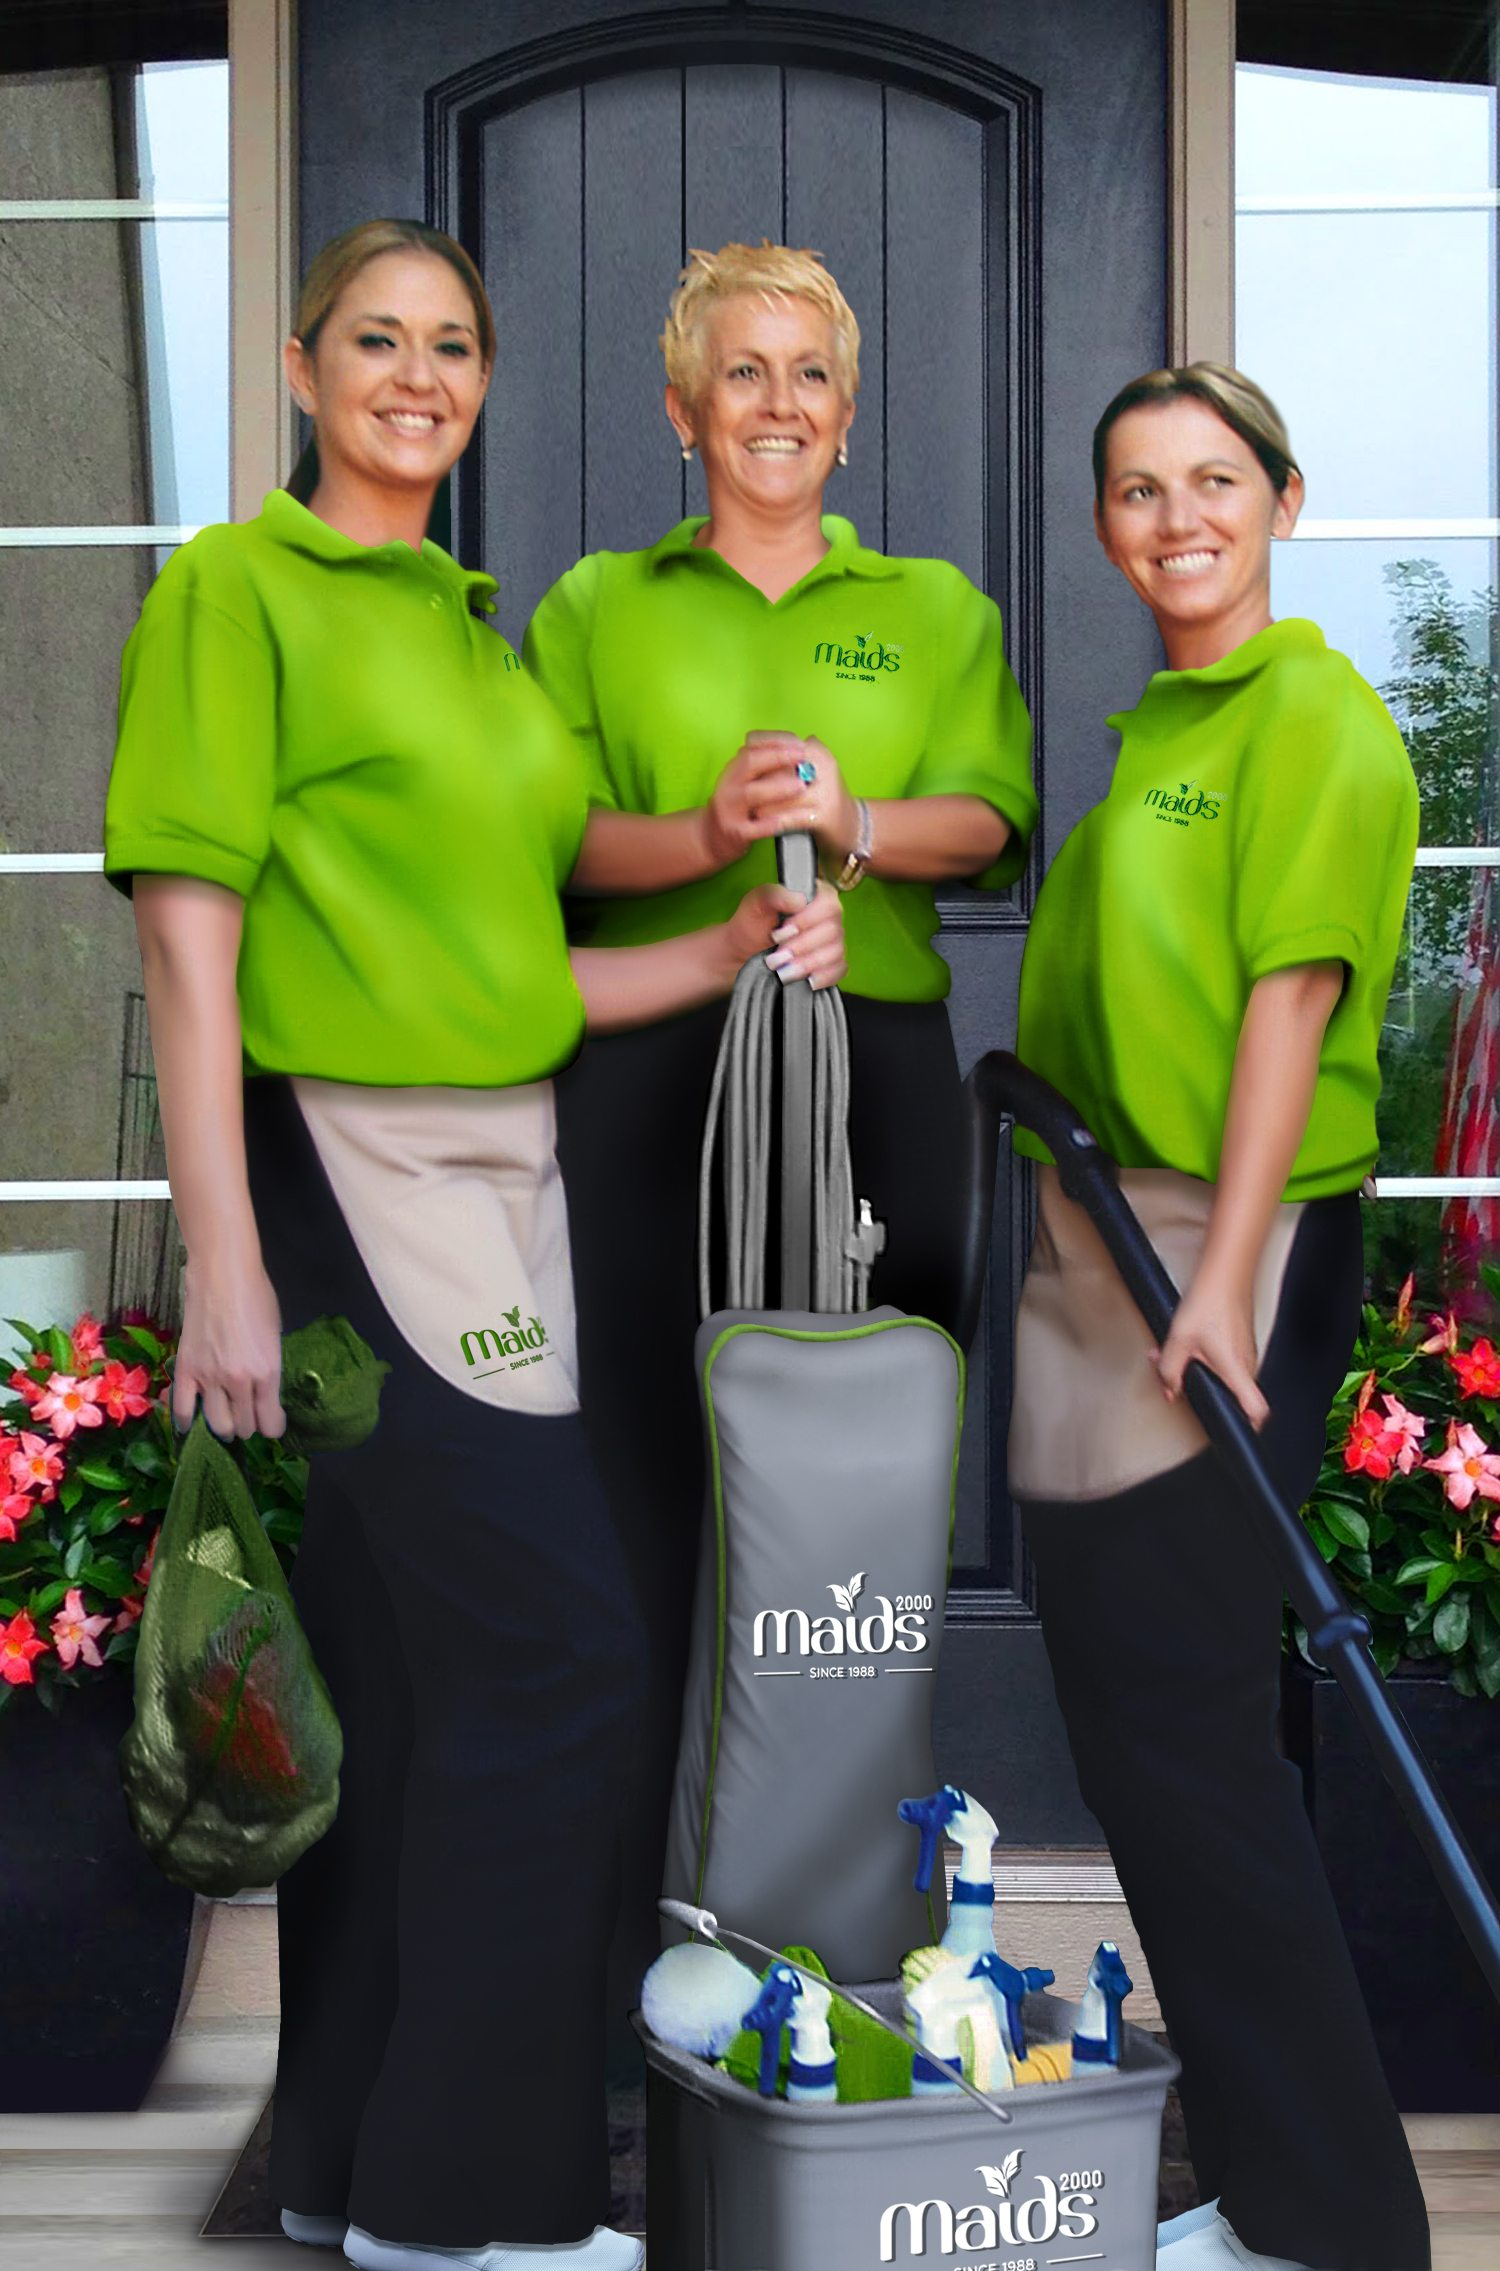 Maids2000 - Why Us? - Our Professionals are Highly Trained, Friendly, Efficient and Trustworthy. Our Team is Bonded and Has Full Liability Insurance.